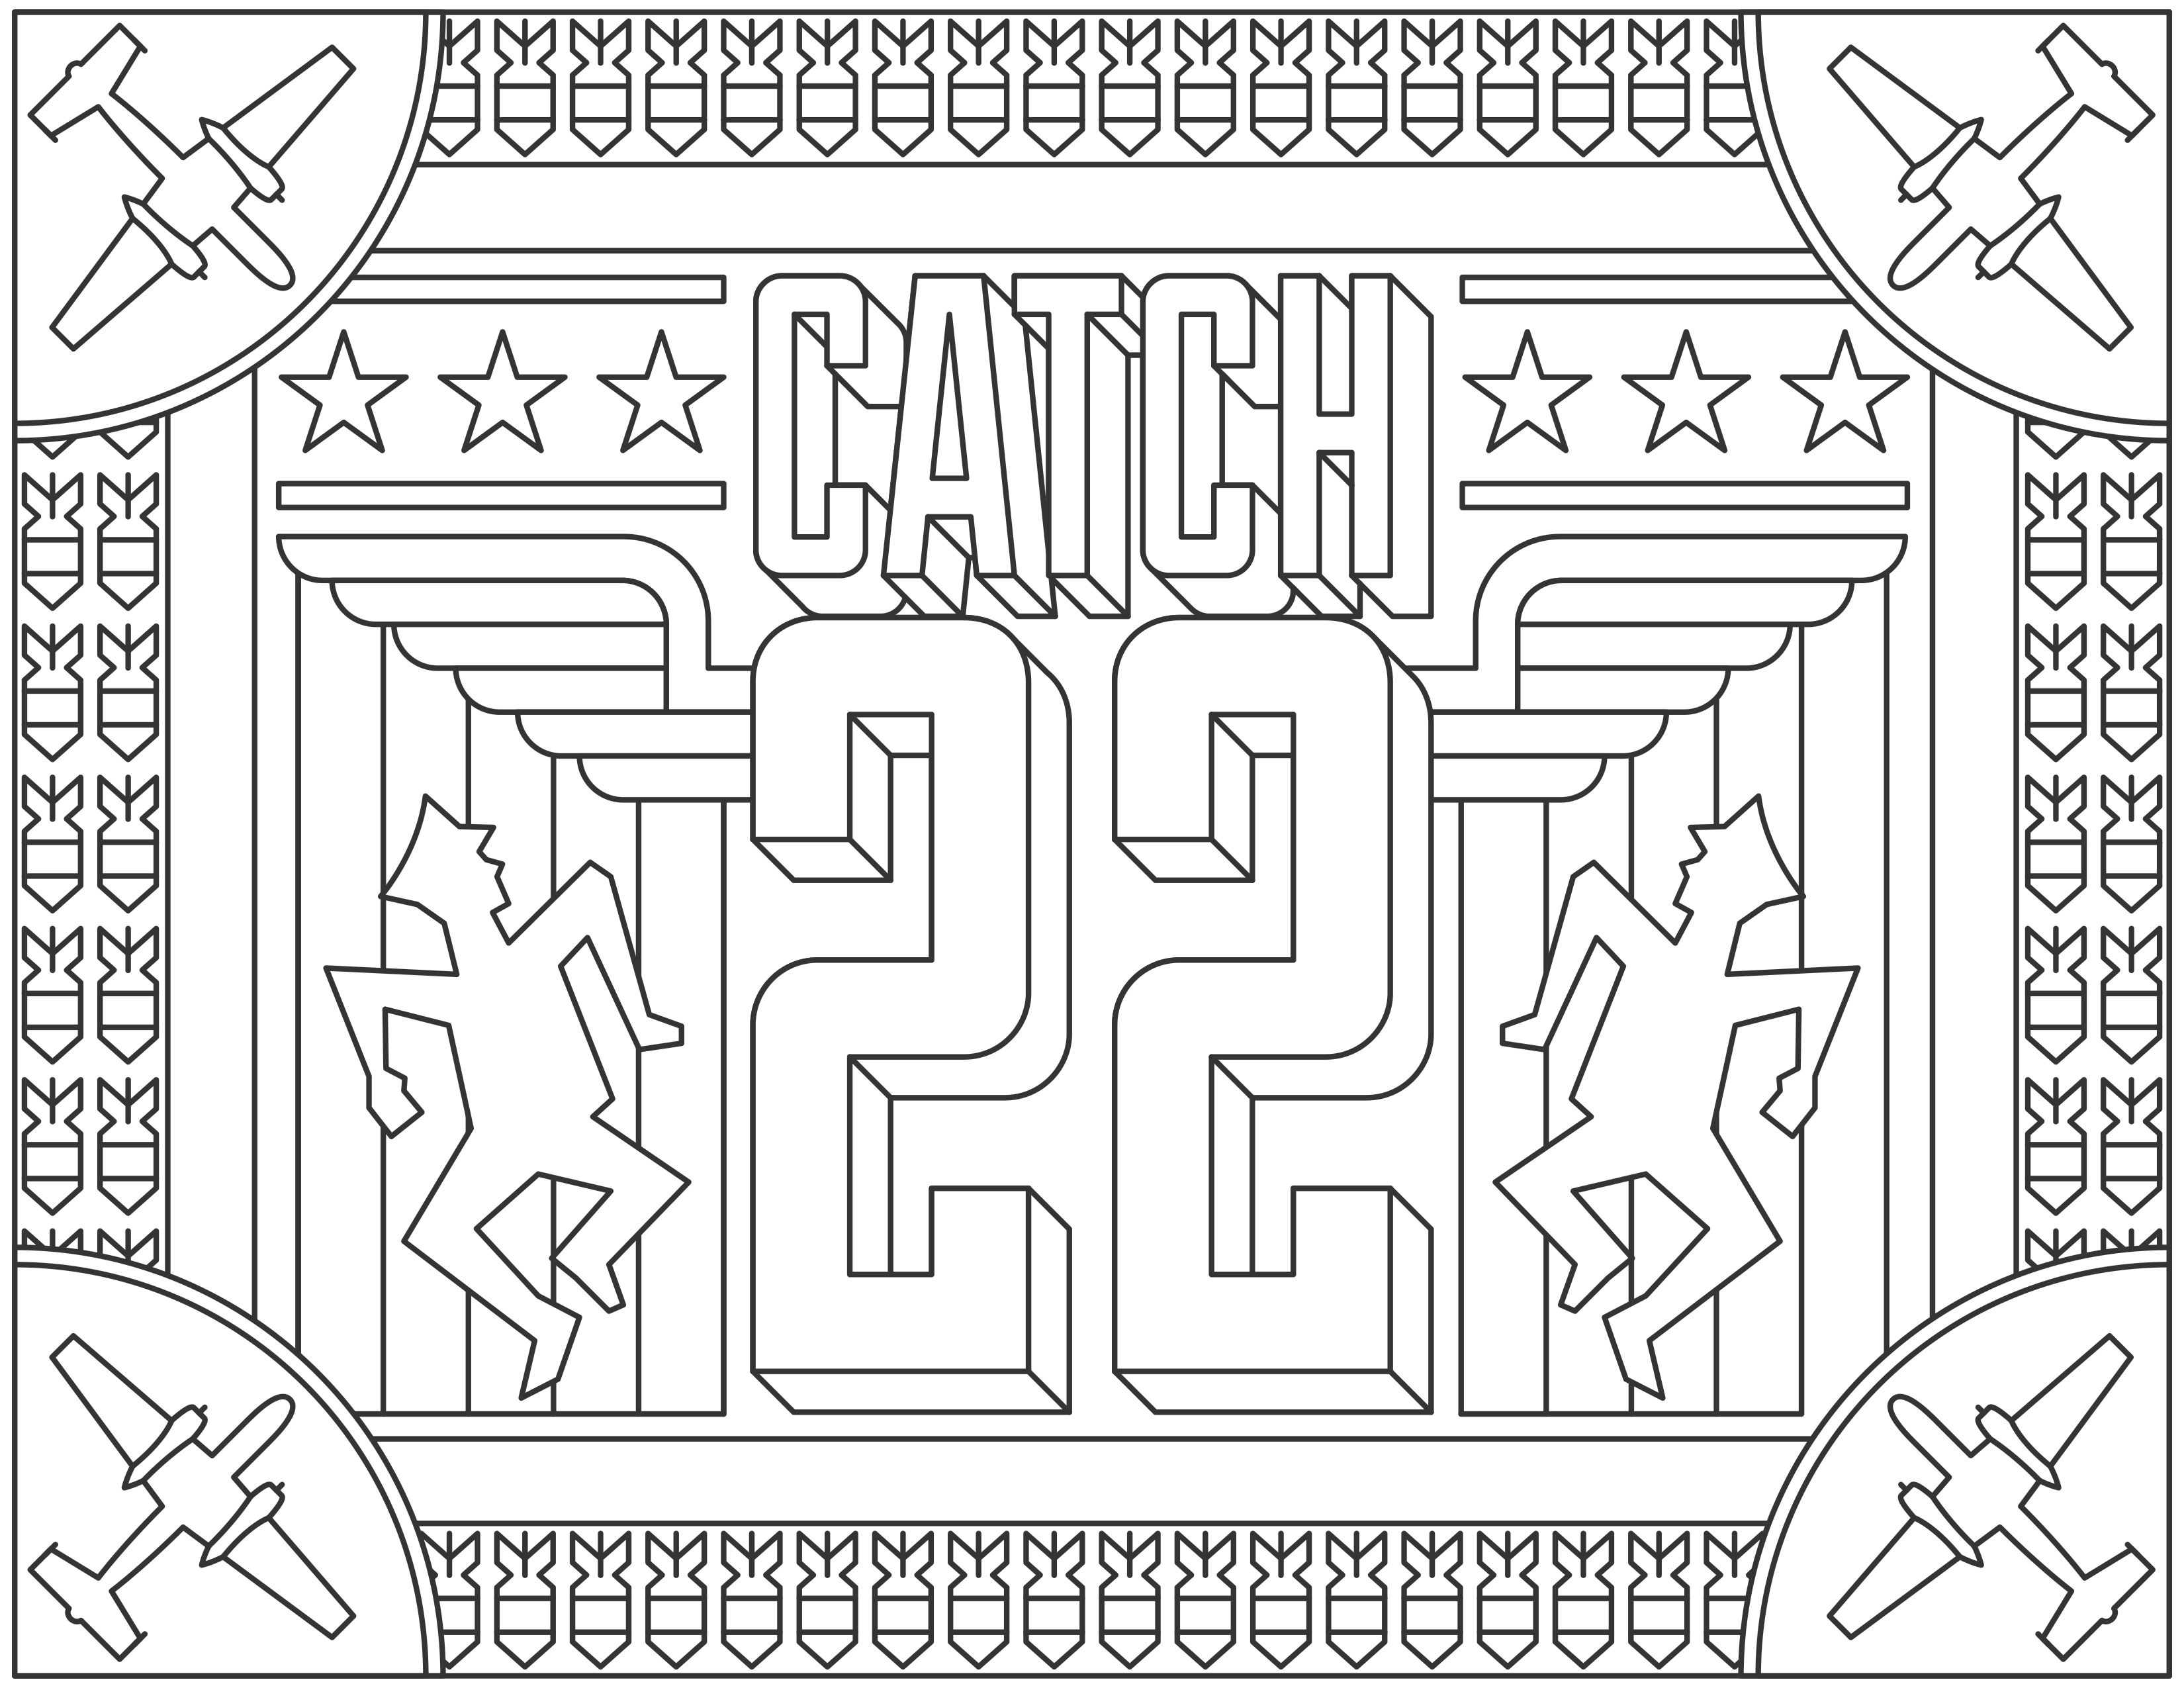 Movies coloring pages for adults coloring adult catch 22 Coloring book poster